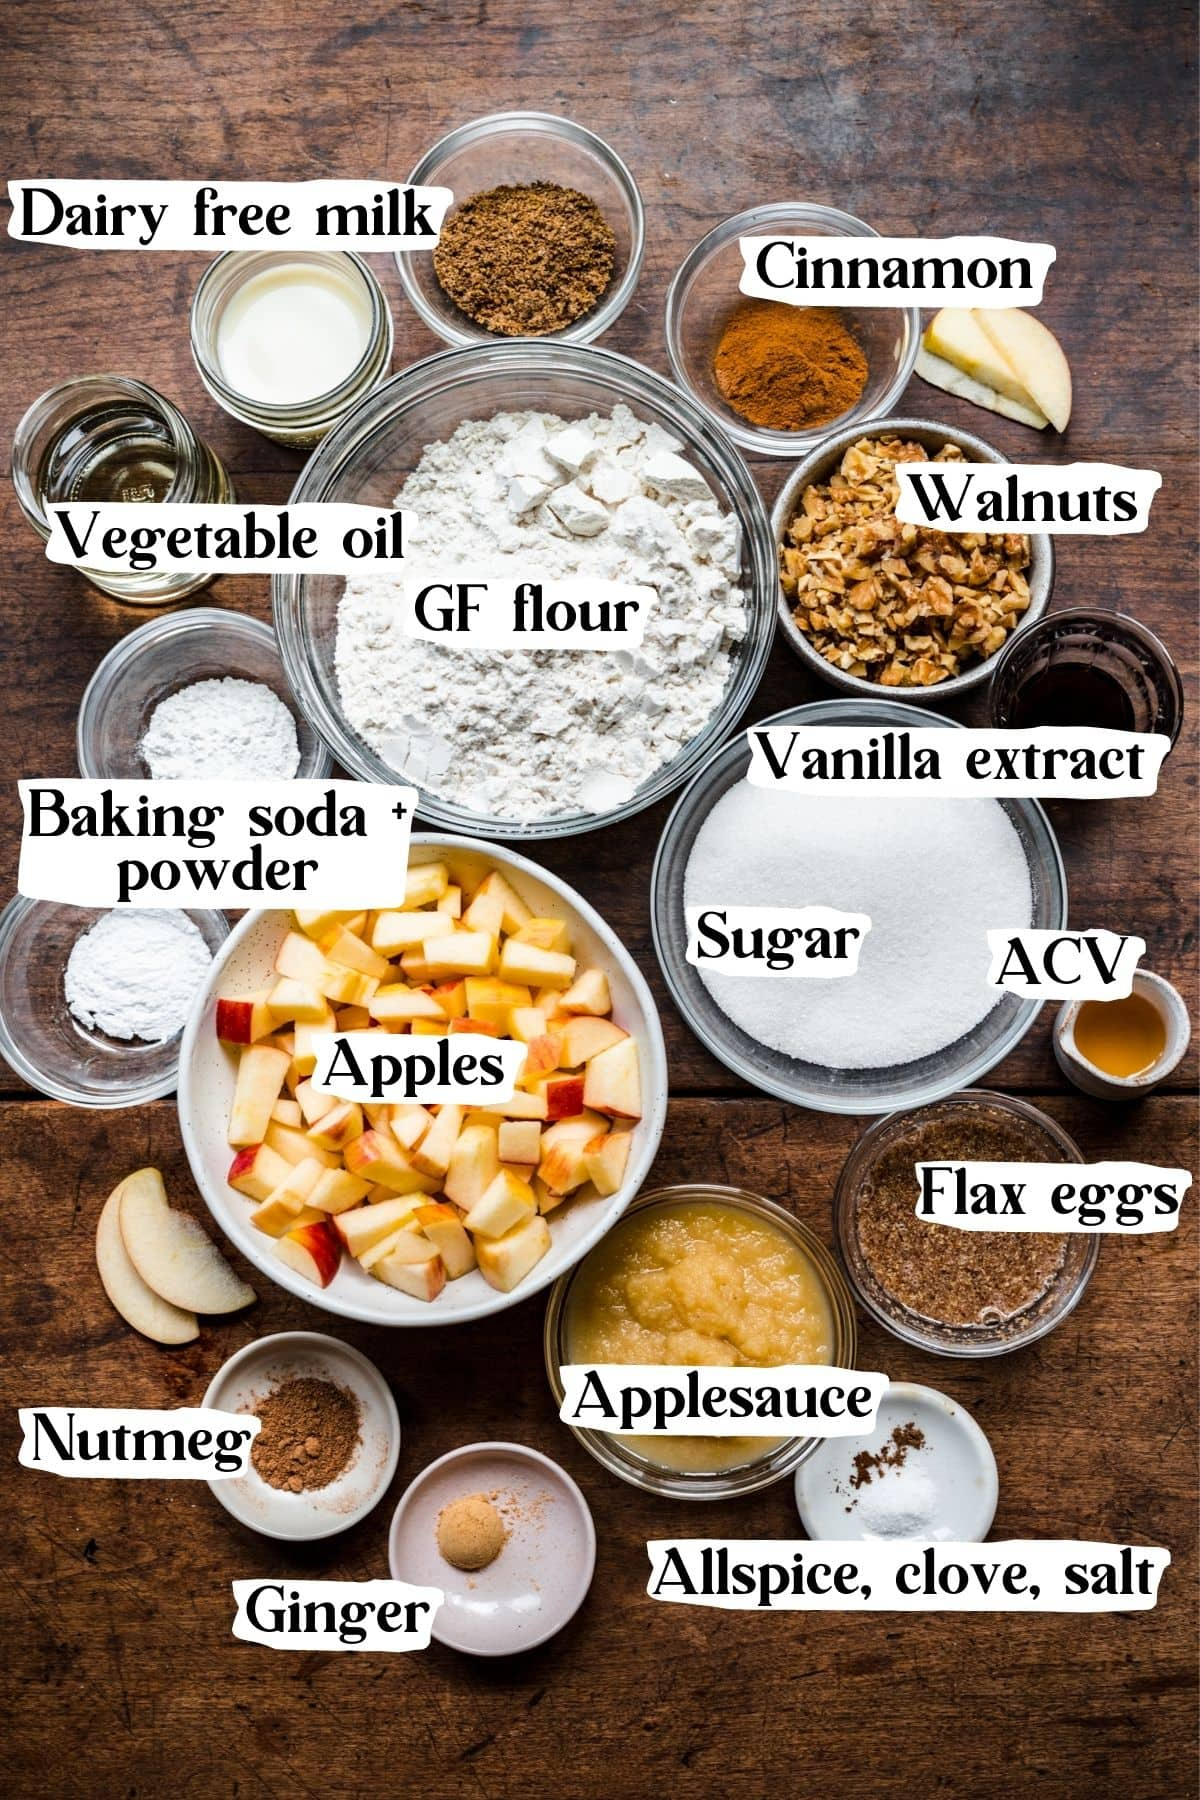 Overhead view of ingredients used in the apple walnut cake.